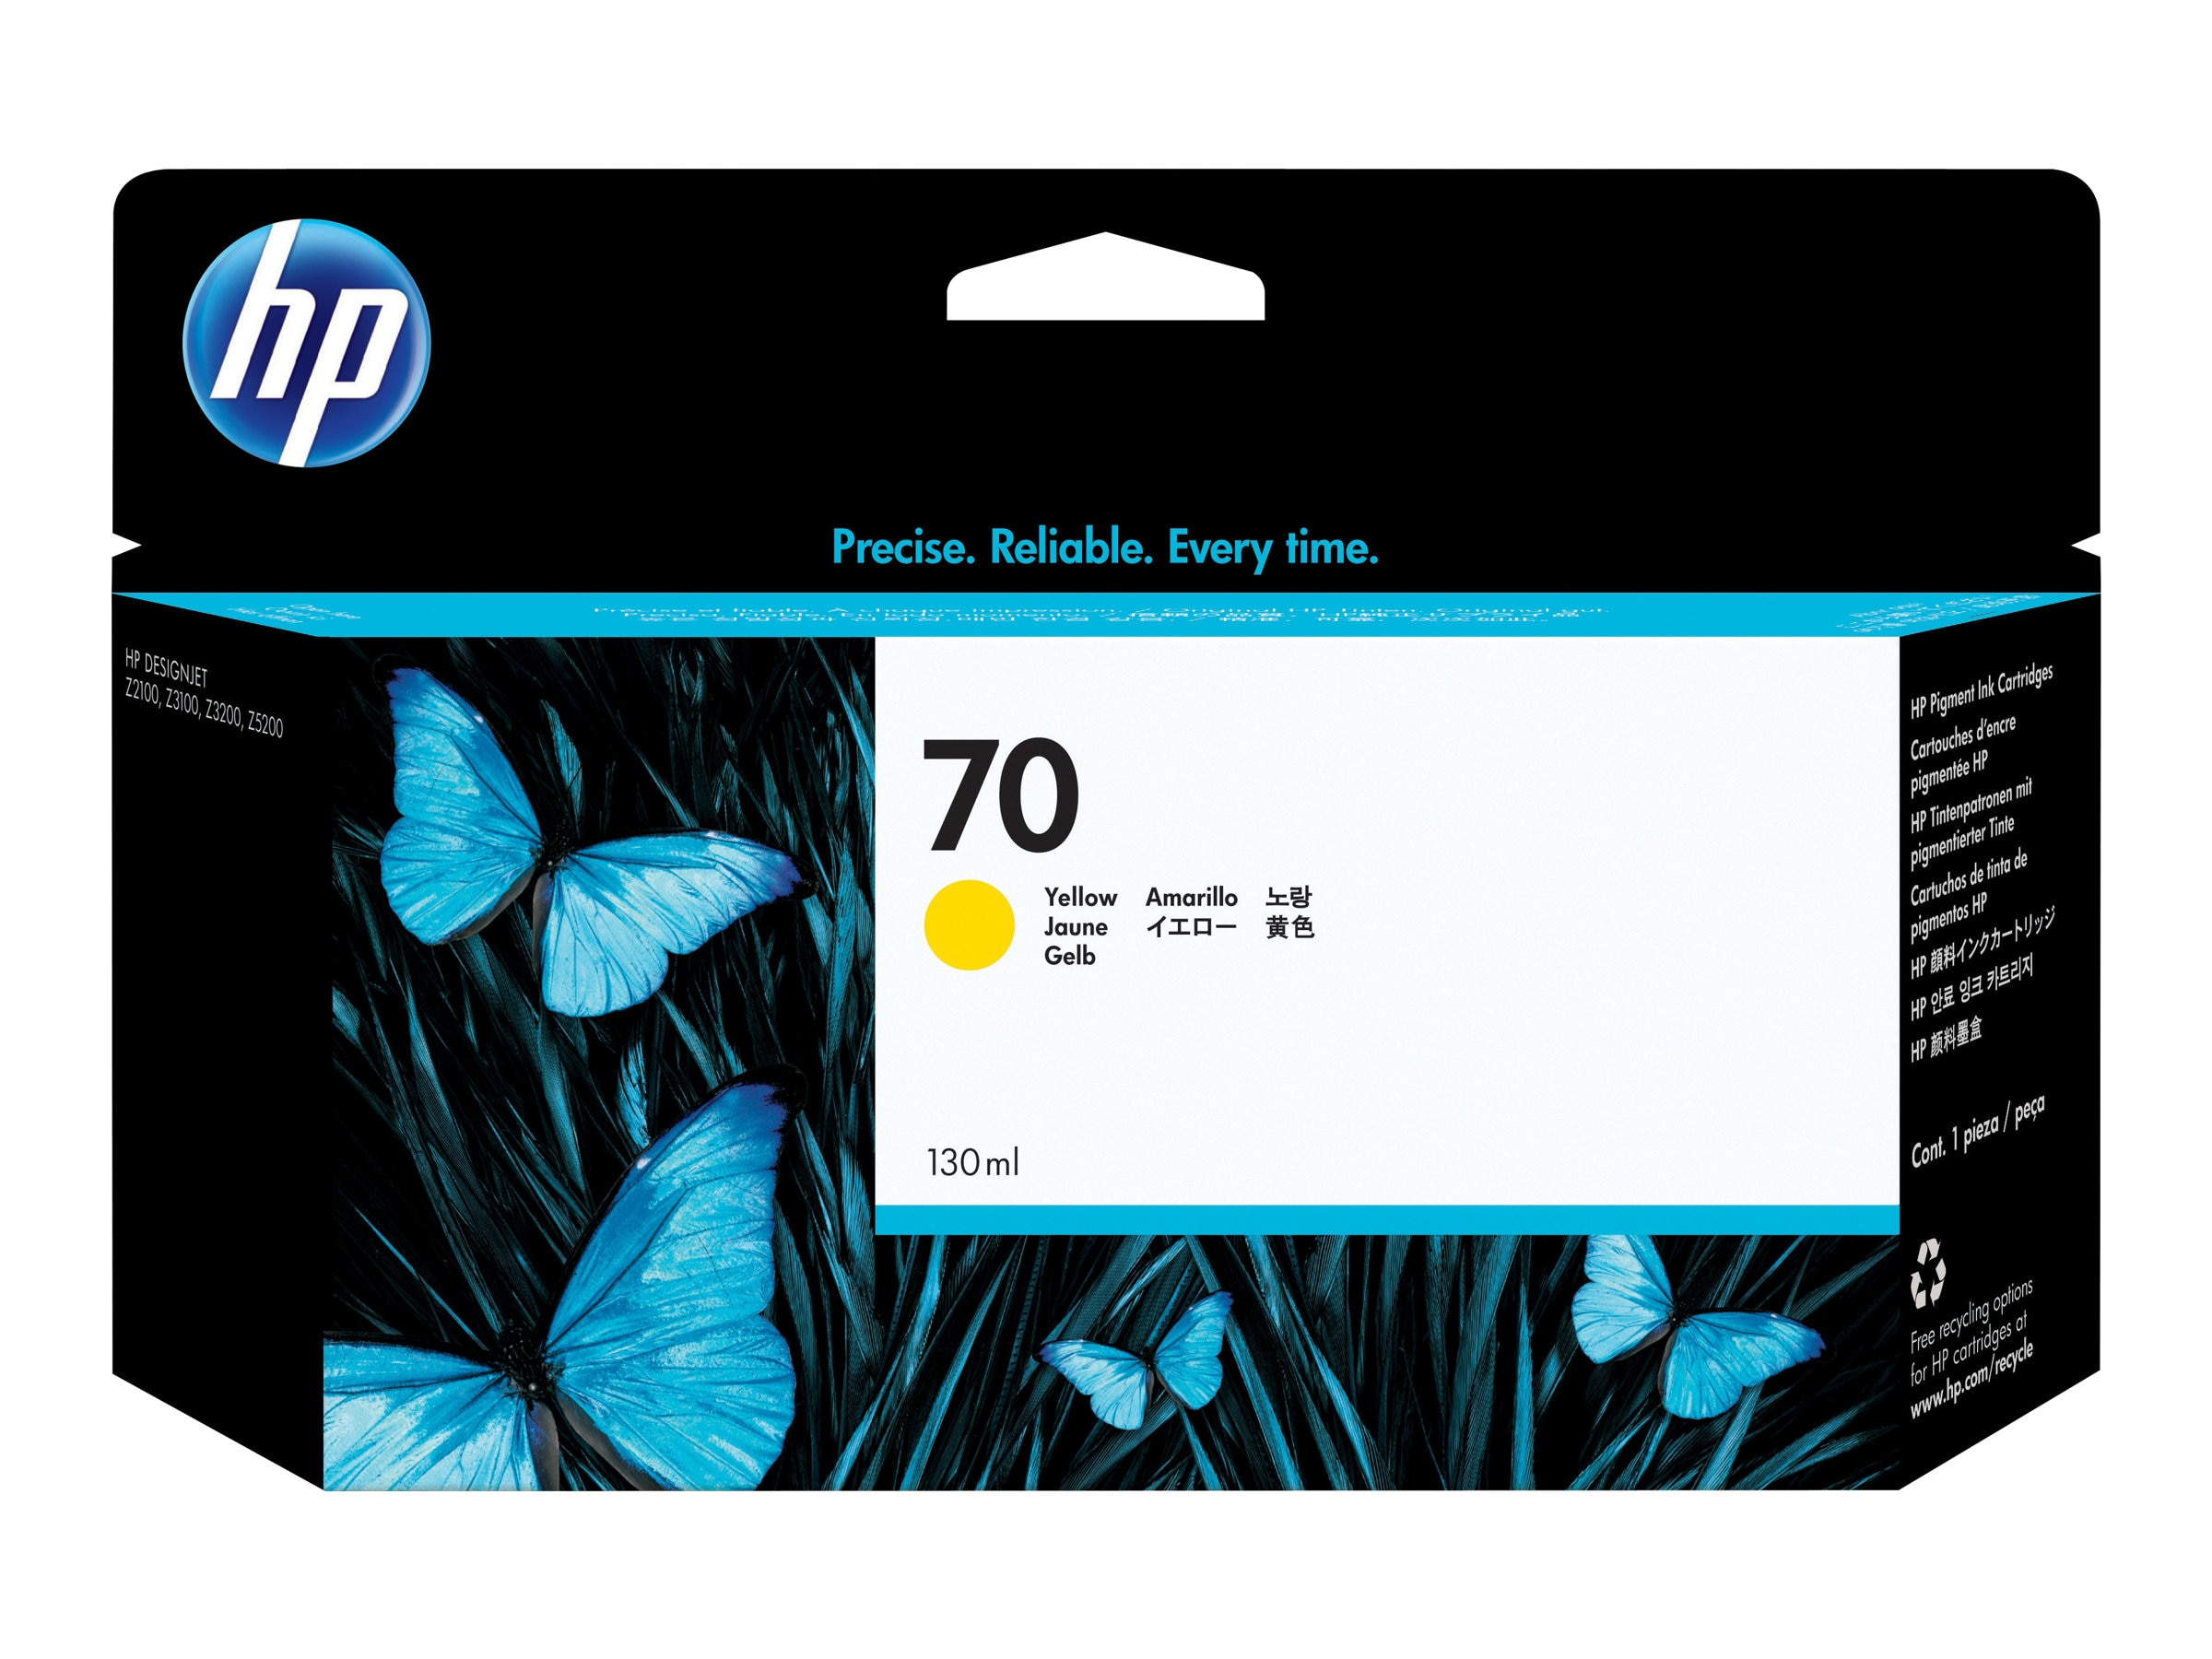 HP Yellow Ink Cartridge for HP DesignJet Z2100 & Z3100 Printers